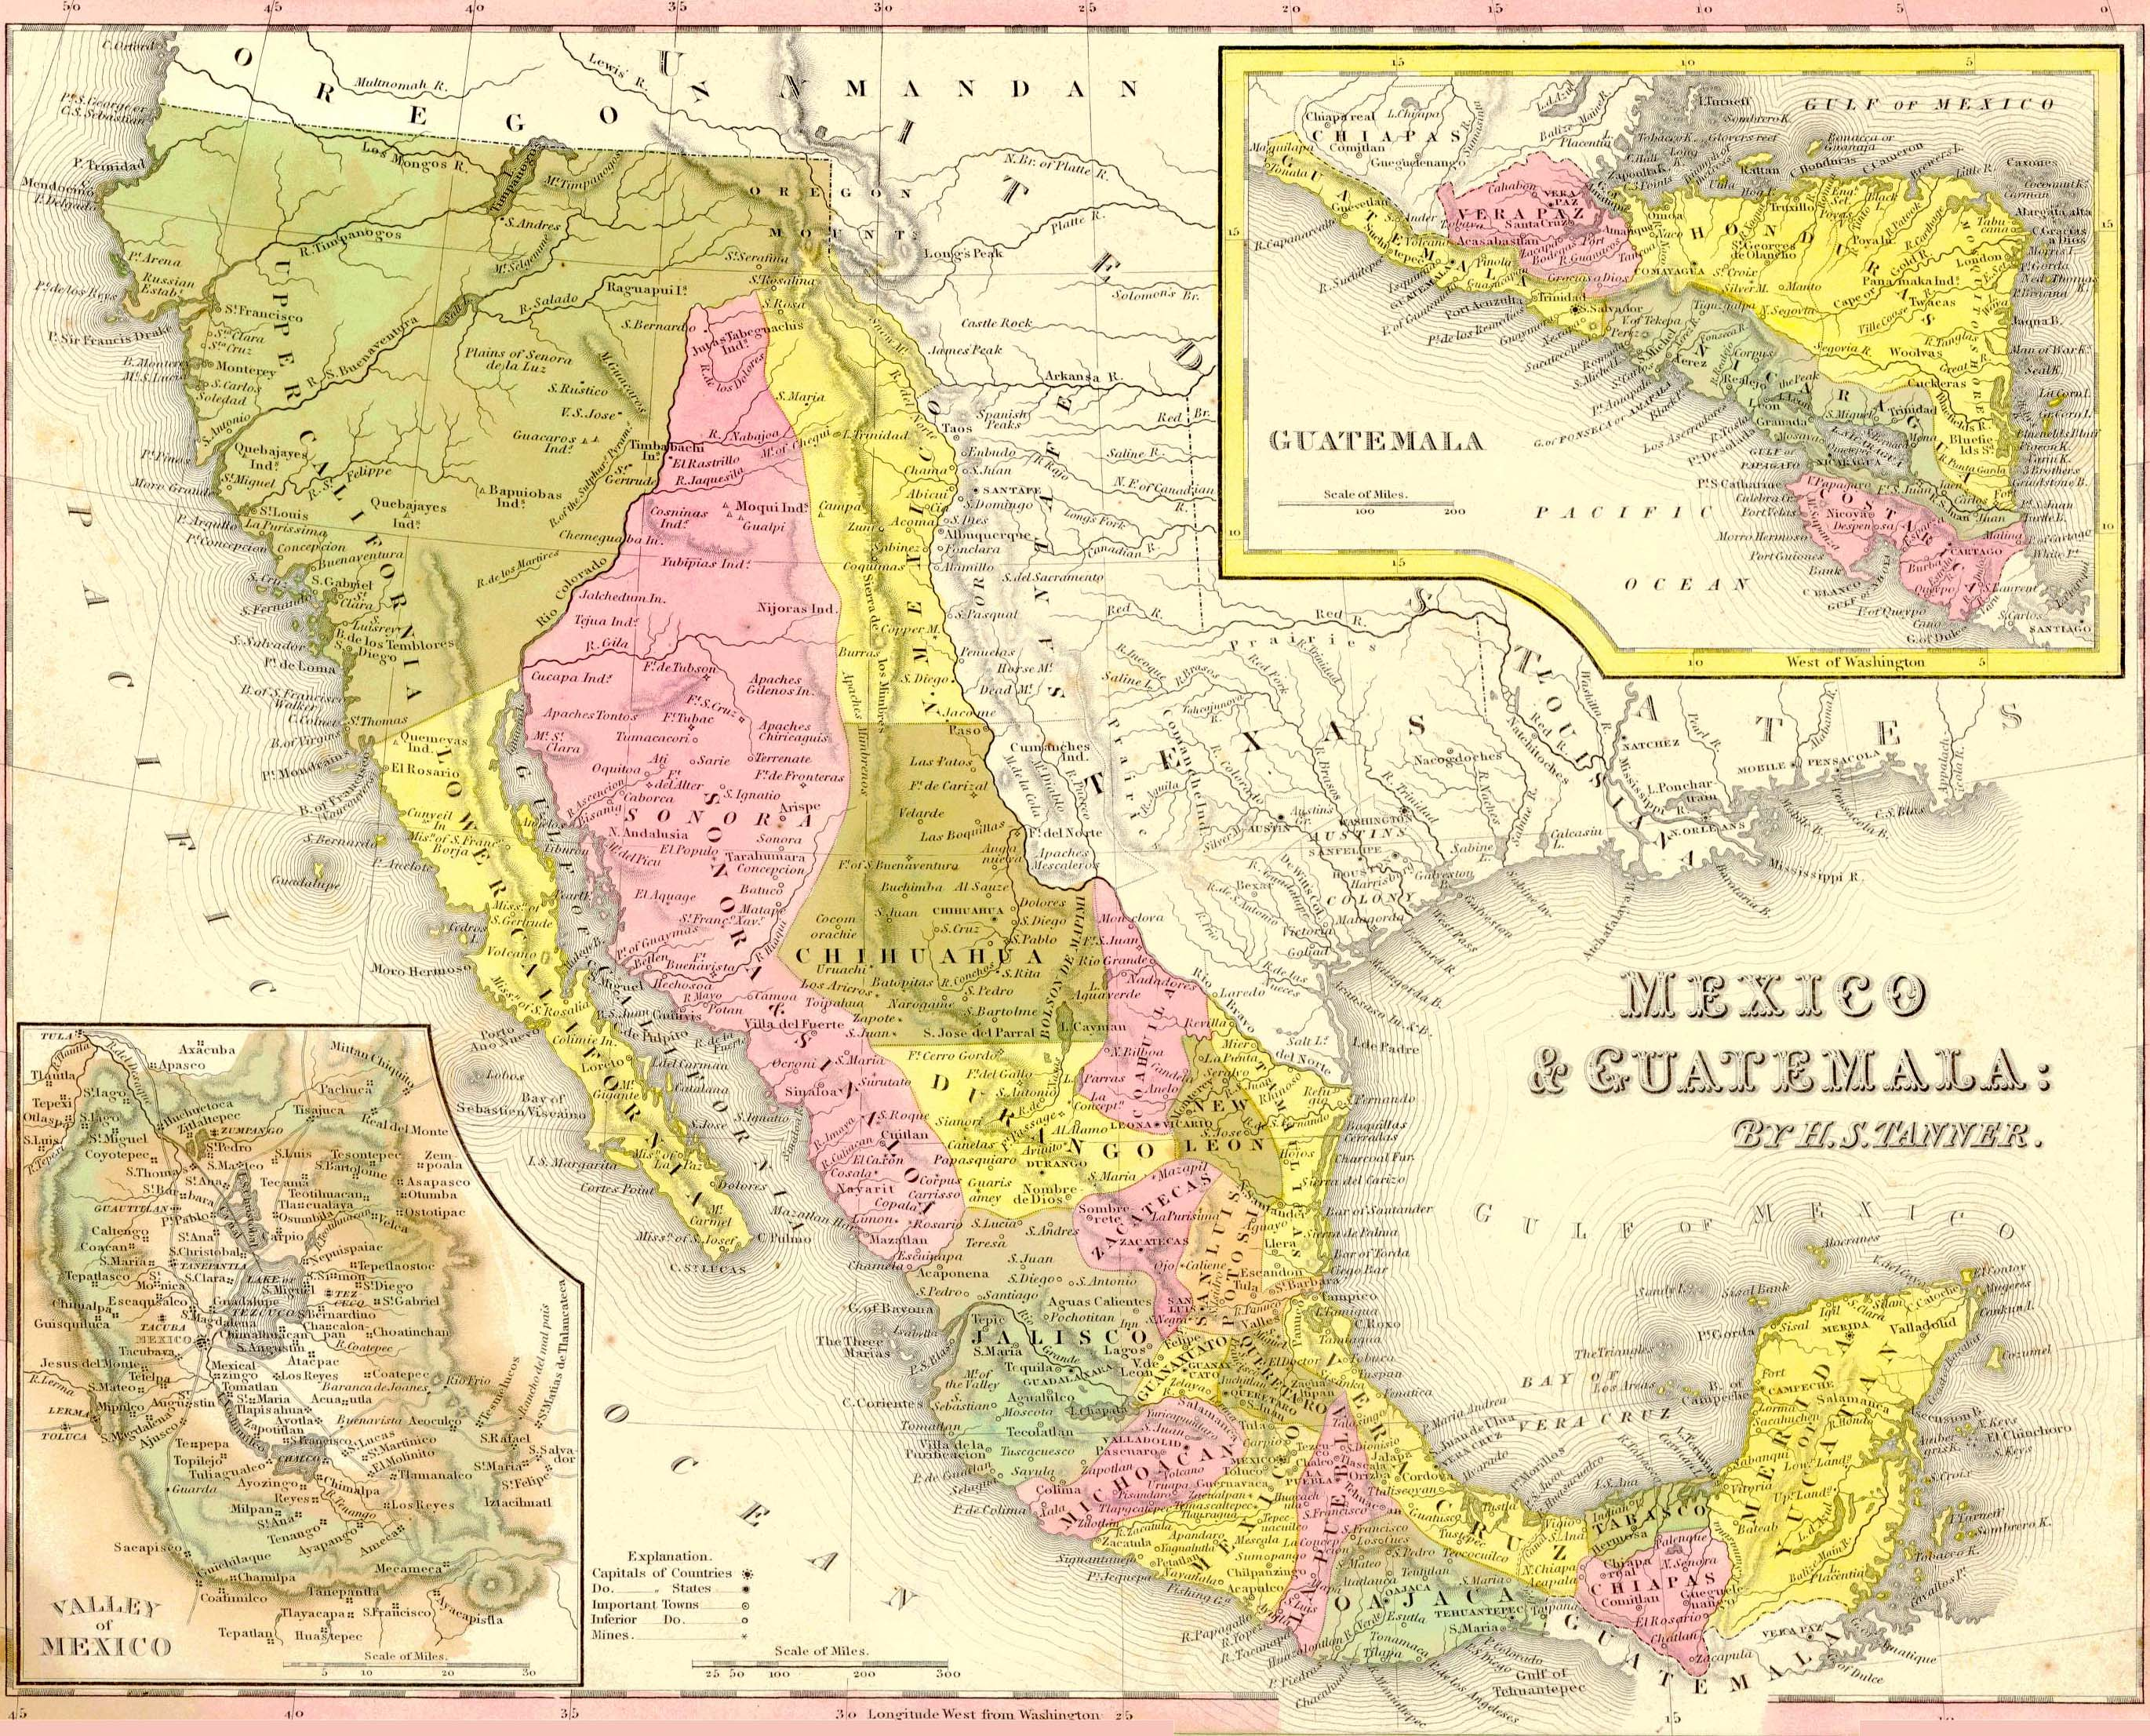 Mexico Map 1850.Image Seo All 2 Mexico Map Post 18